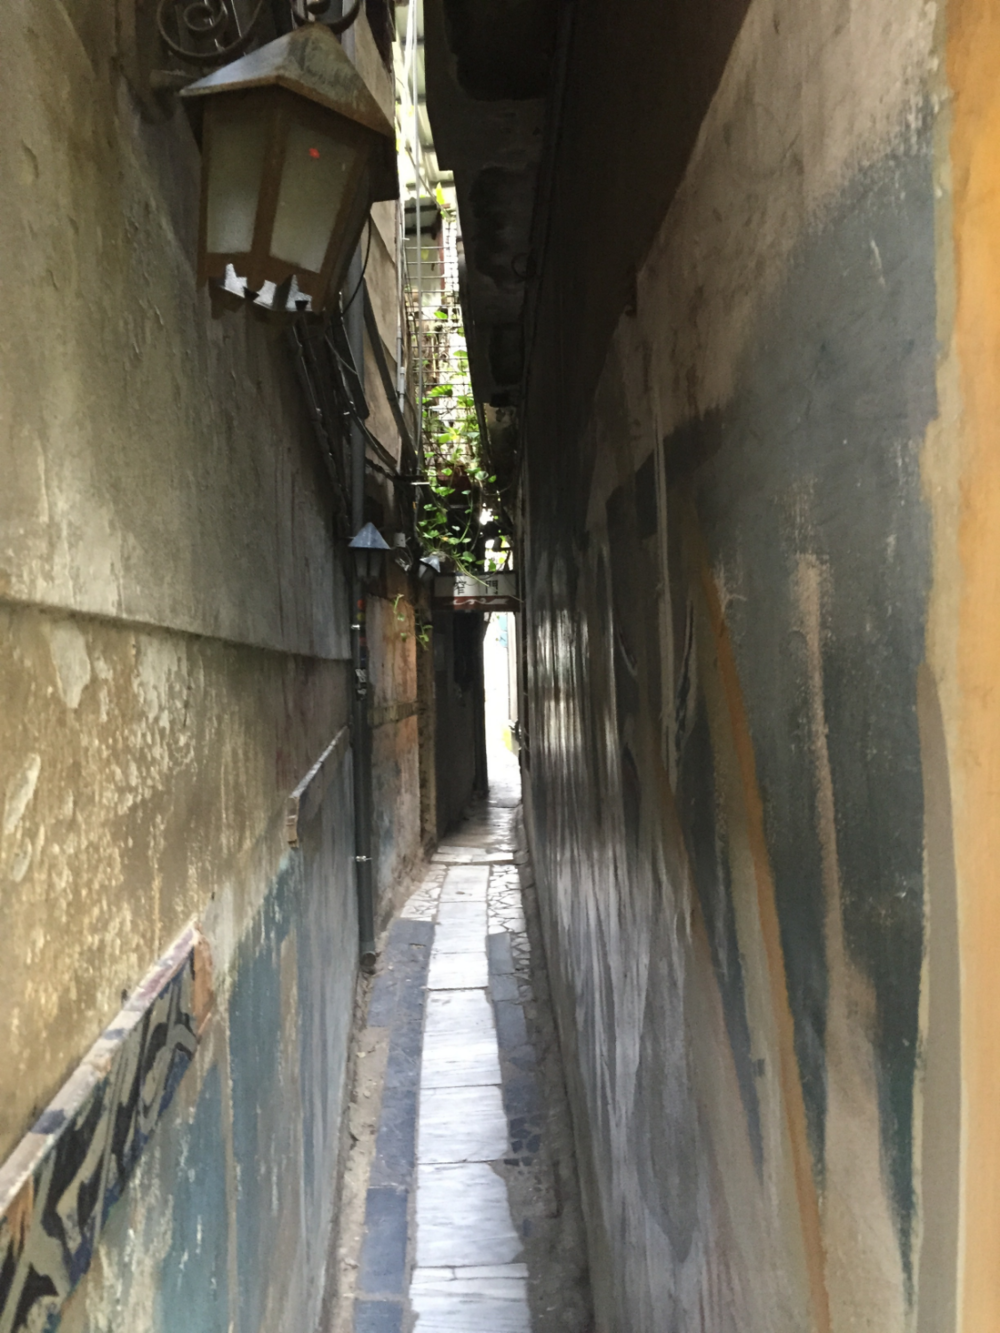 An extremely narrow alley with a cafe hidden within.